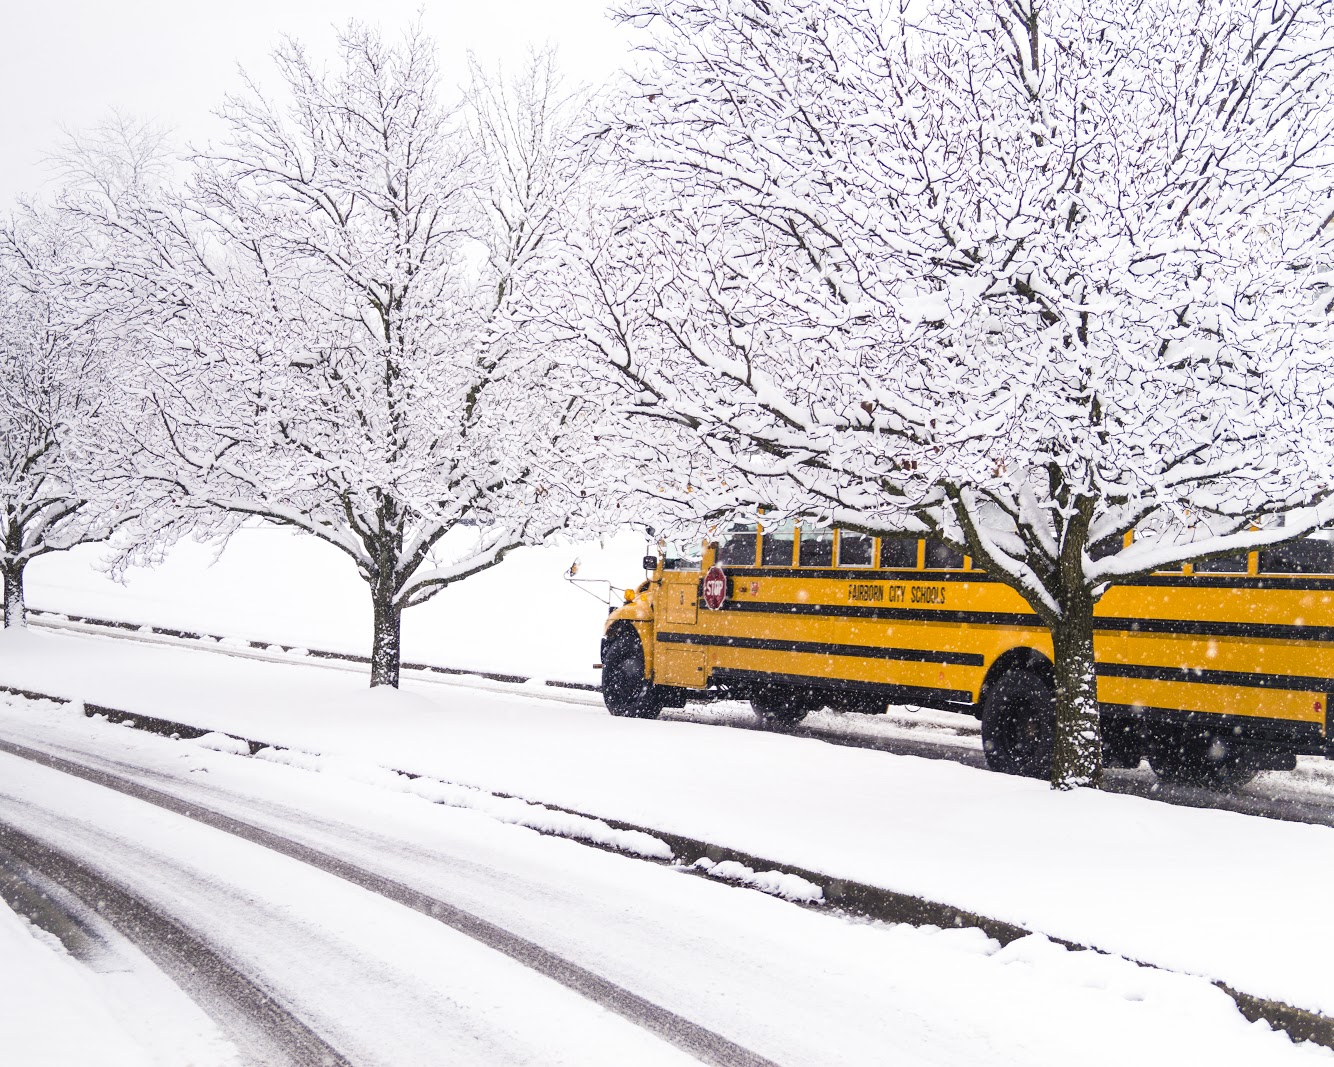 Proposed legislation could increase fines for school bus violations. Photography Soham Parikh / The Guardian